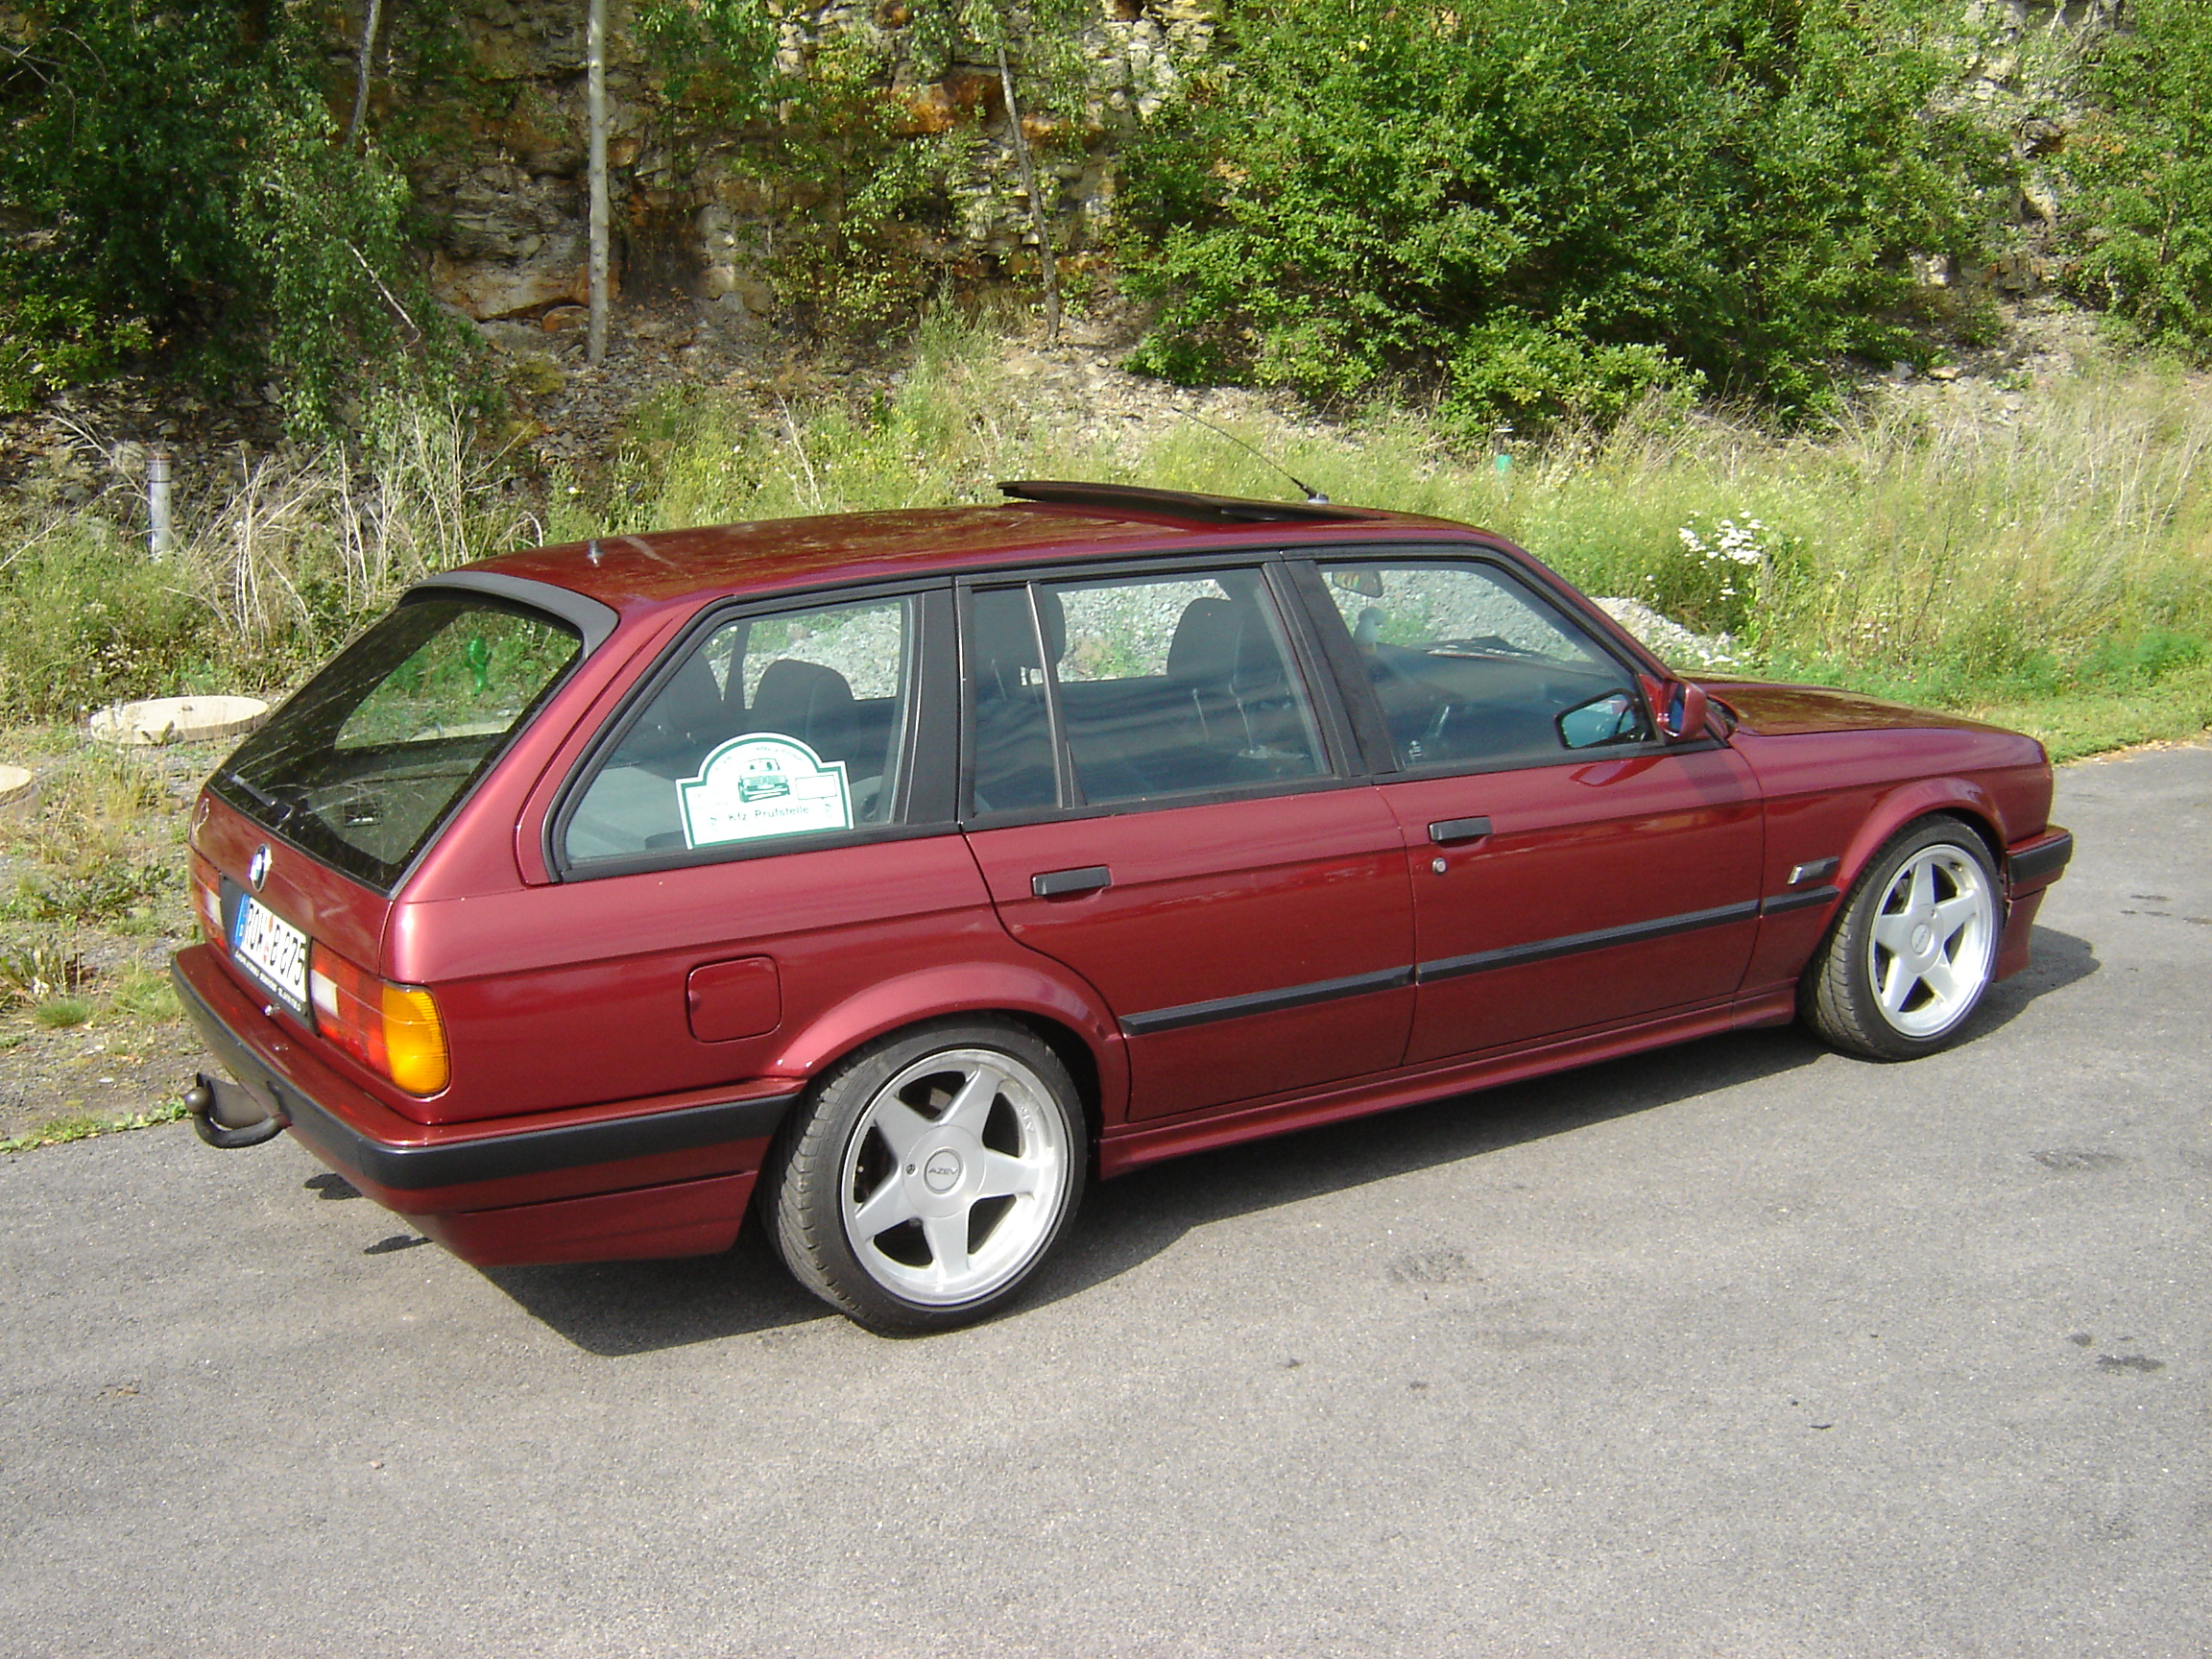 BMW 325i Touring | Flickr - Photo Sharing!